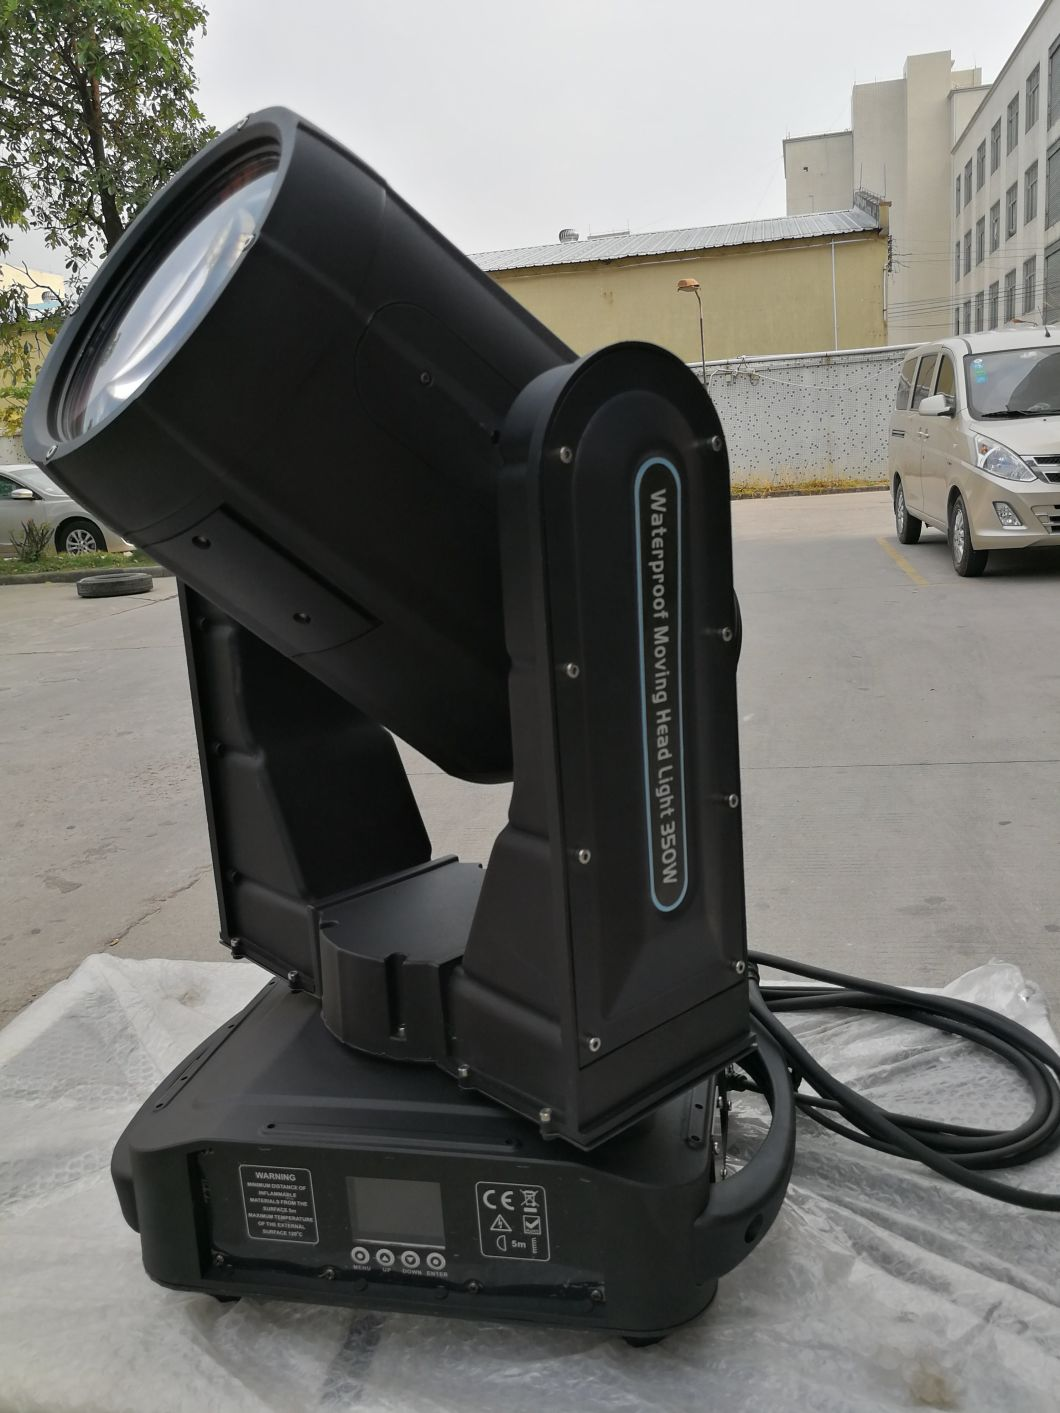 350W Super Bright Waterproof Beam Outdoor Moving Head Light